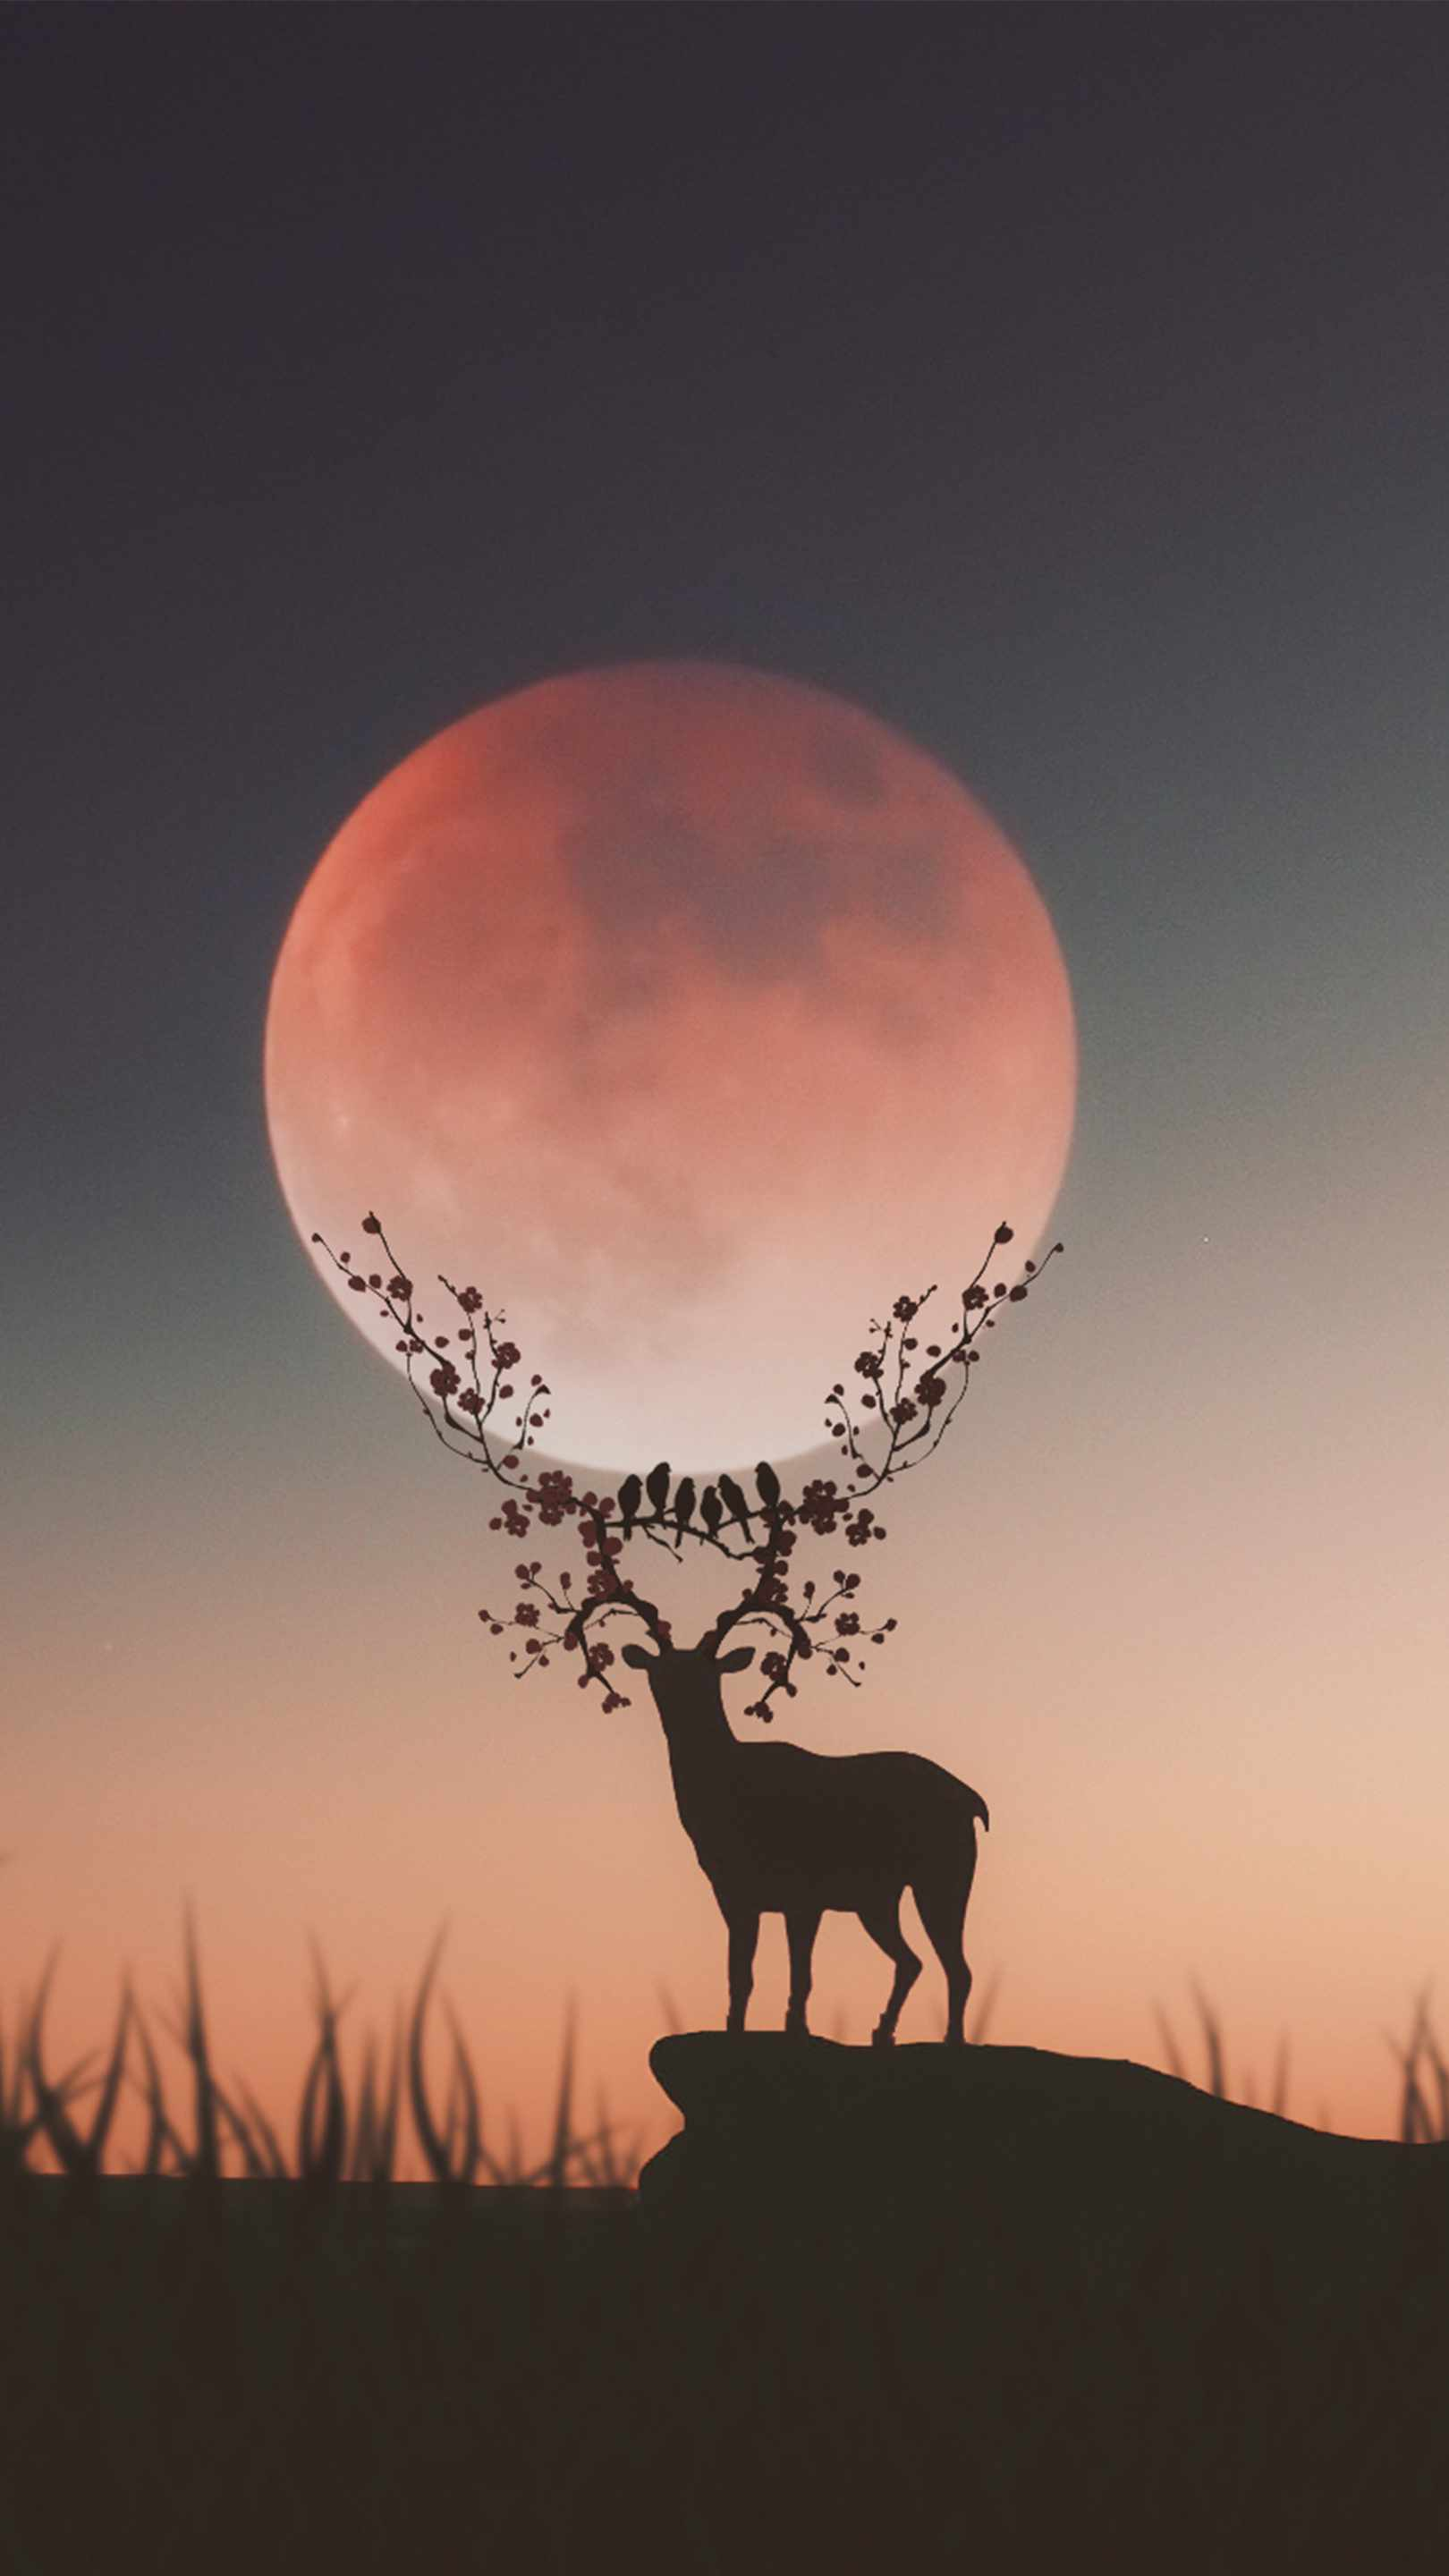 Cute Dog Wallpapers With Quotes Deer Silhouette Moon Iphone Wallpaper Iphone Wallpapers